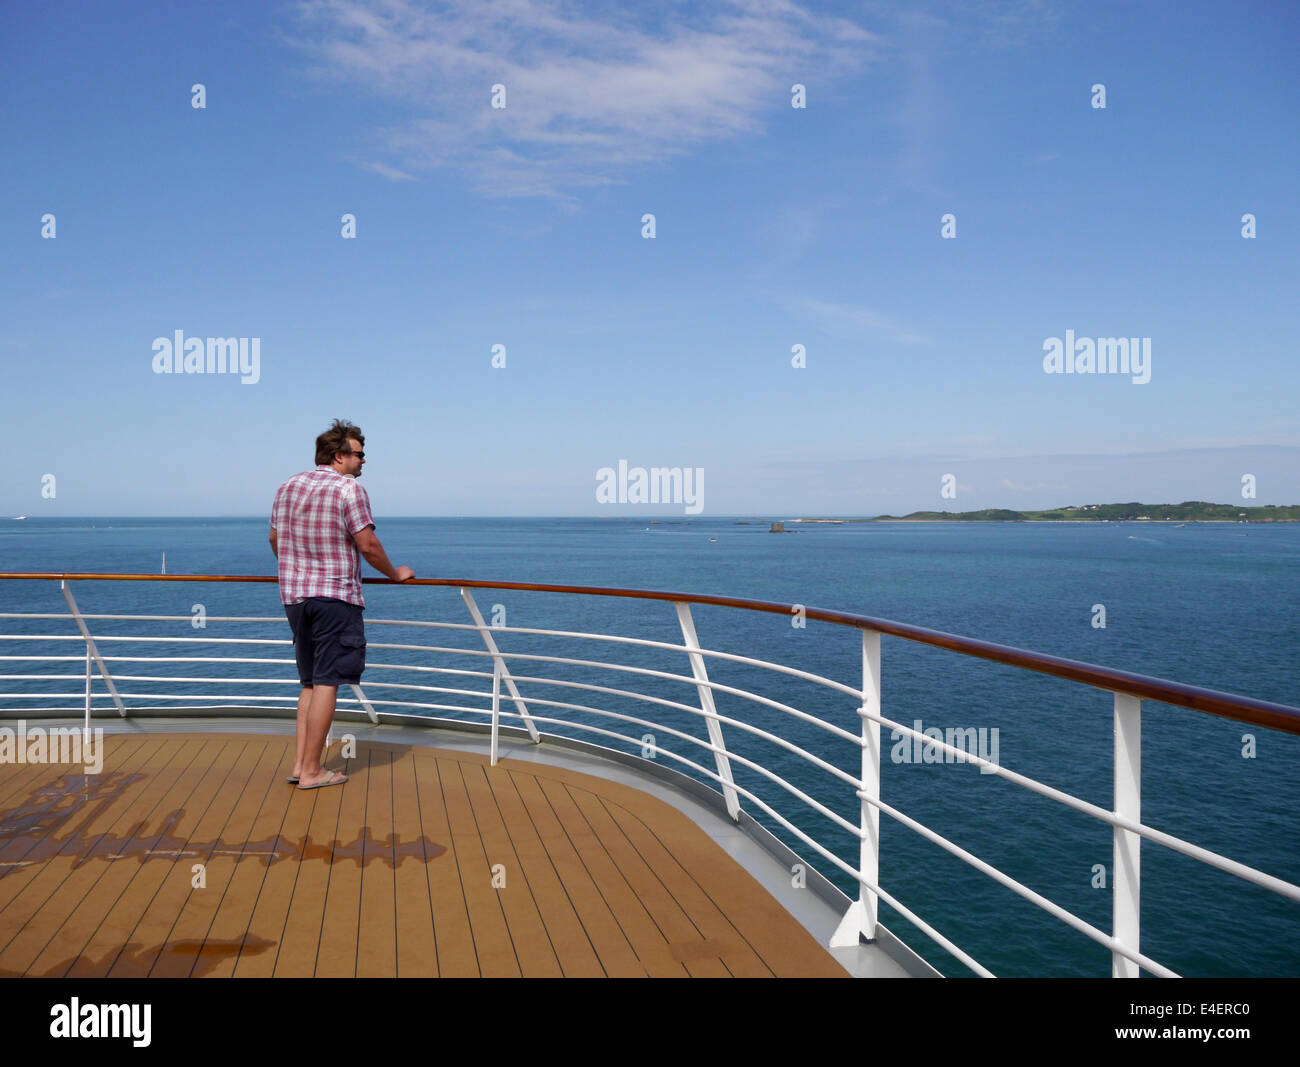 A Cruise Ship Passenger Looking Out To Sea From The Top Deck Stock Photo Royalty Free Image ...